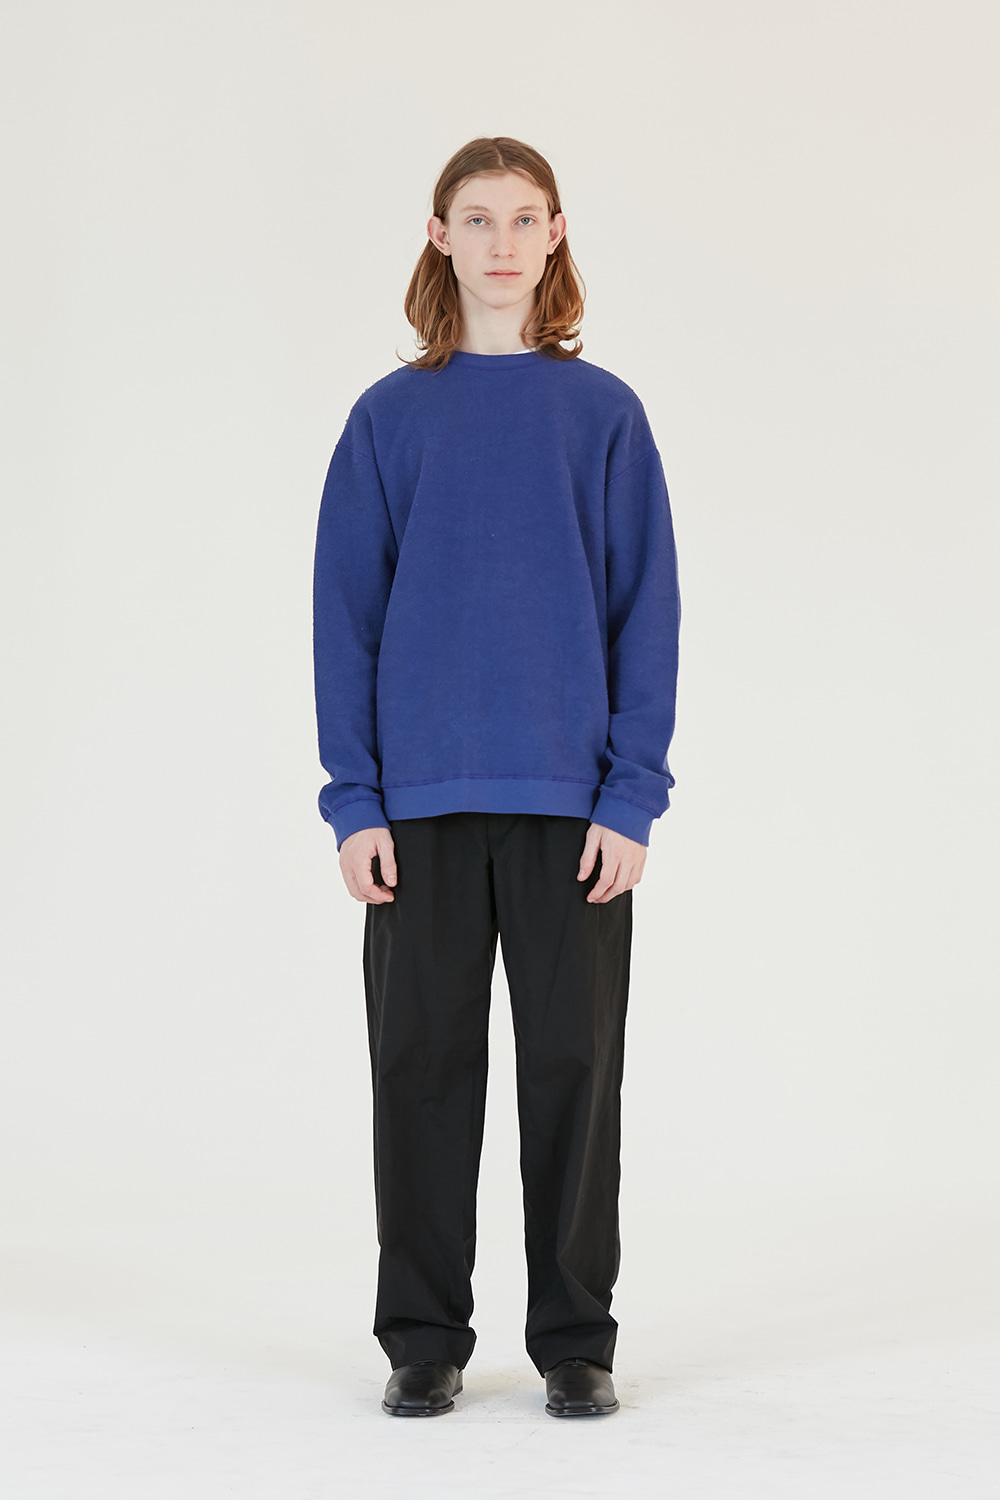 Reverse Sweatshirt Men [Royal Blue]